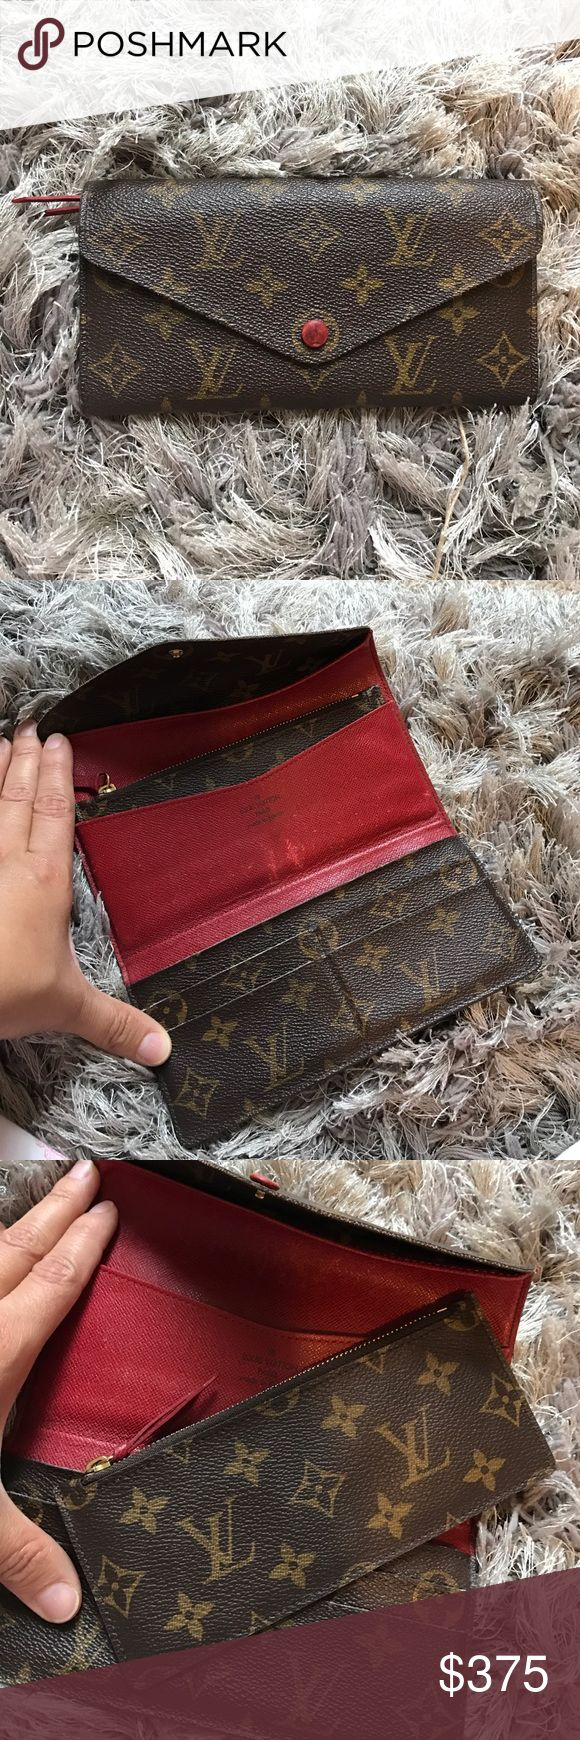 100% Authentic Louis Vuitton Wallet 100% authentic. Loved. No trades. Lost dust bag in move. Louis Vuitton Bags Wallets